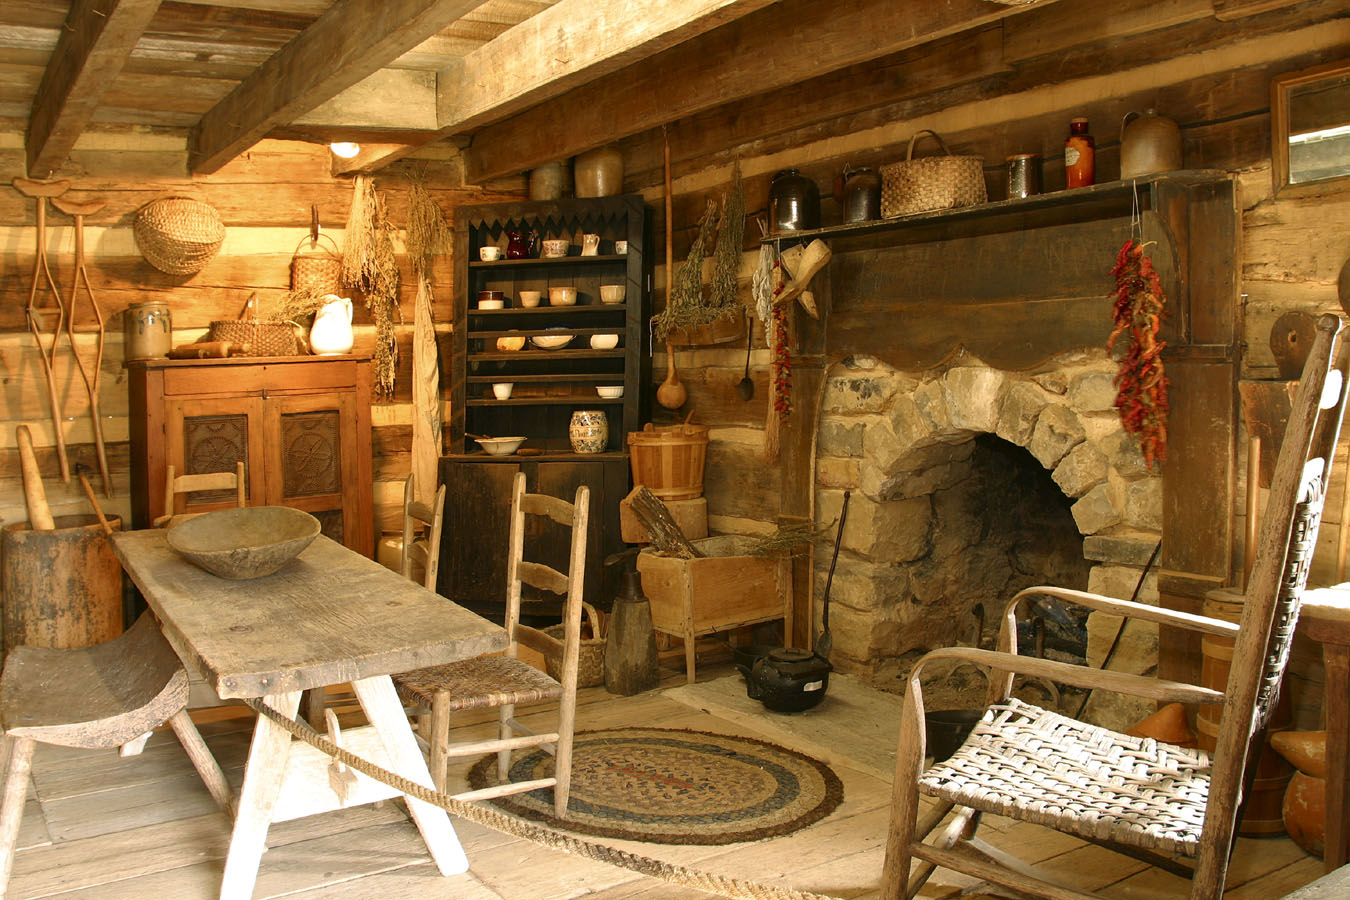 Fireplaces With Stone Surrounding Arched Stone Fireplace In An Old Log Cabin Handmade Houses